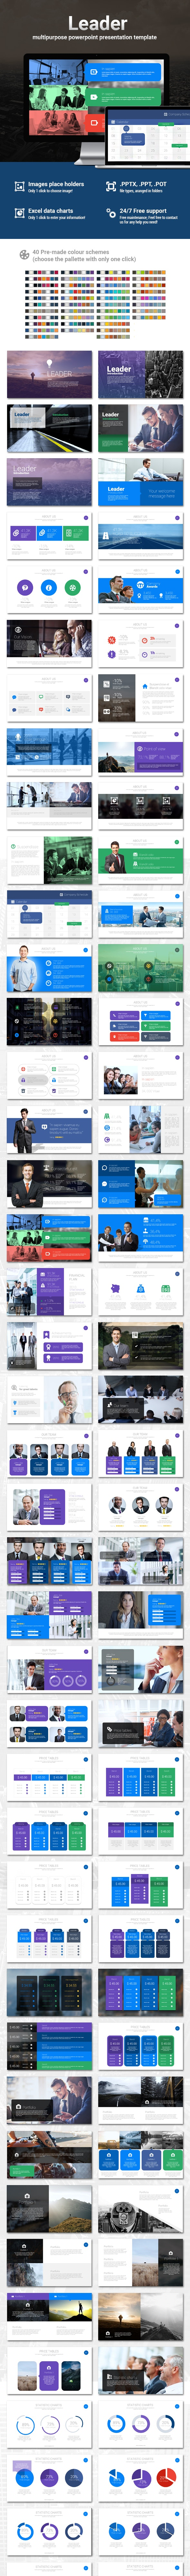 Leader Powerpoint Presentation Template - Business PowerPoint Templates